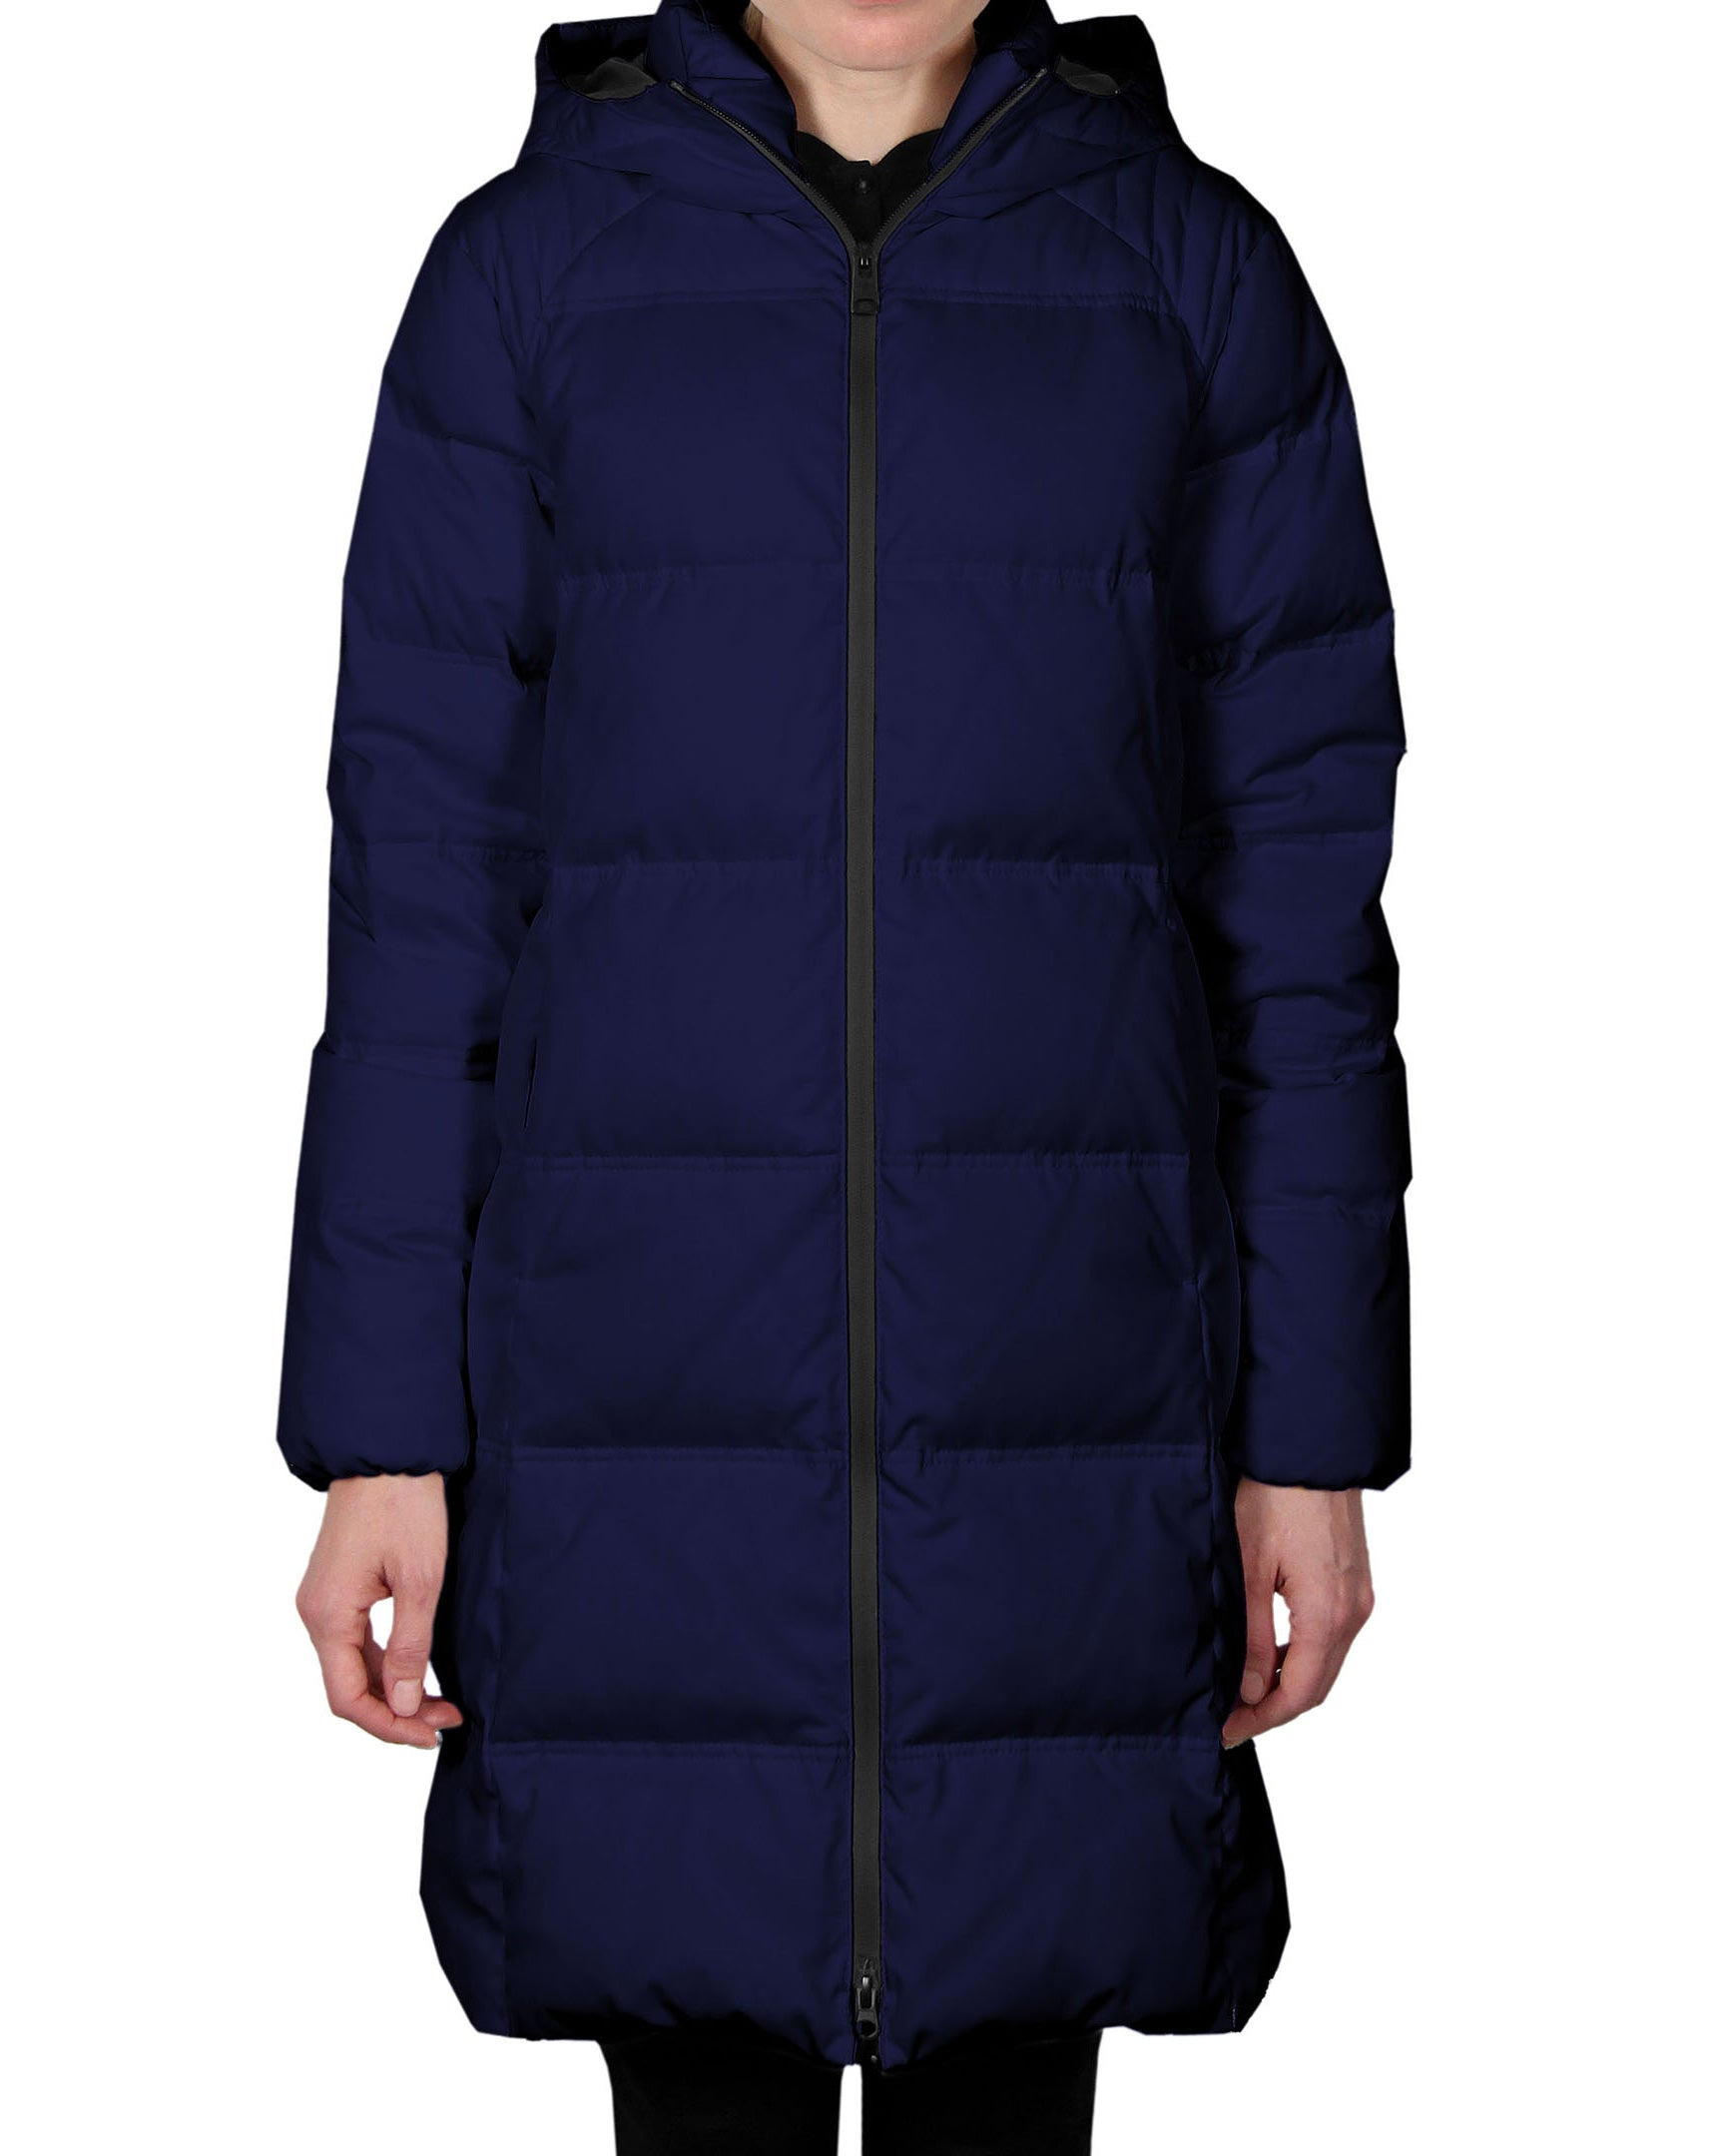 Women's Storm Coat - Navy